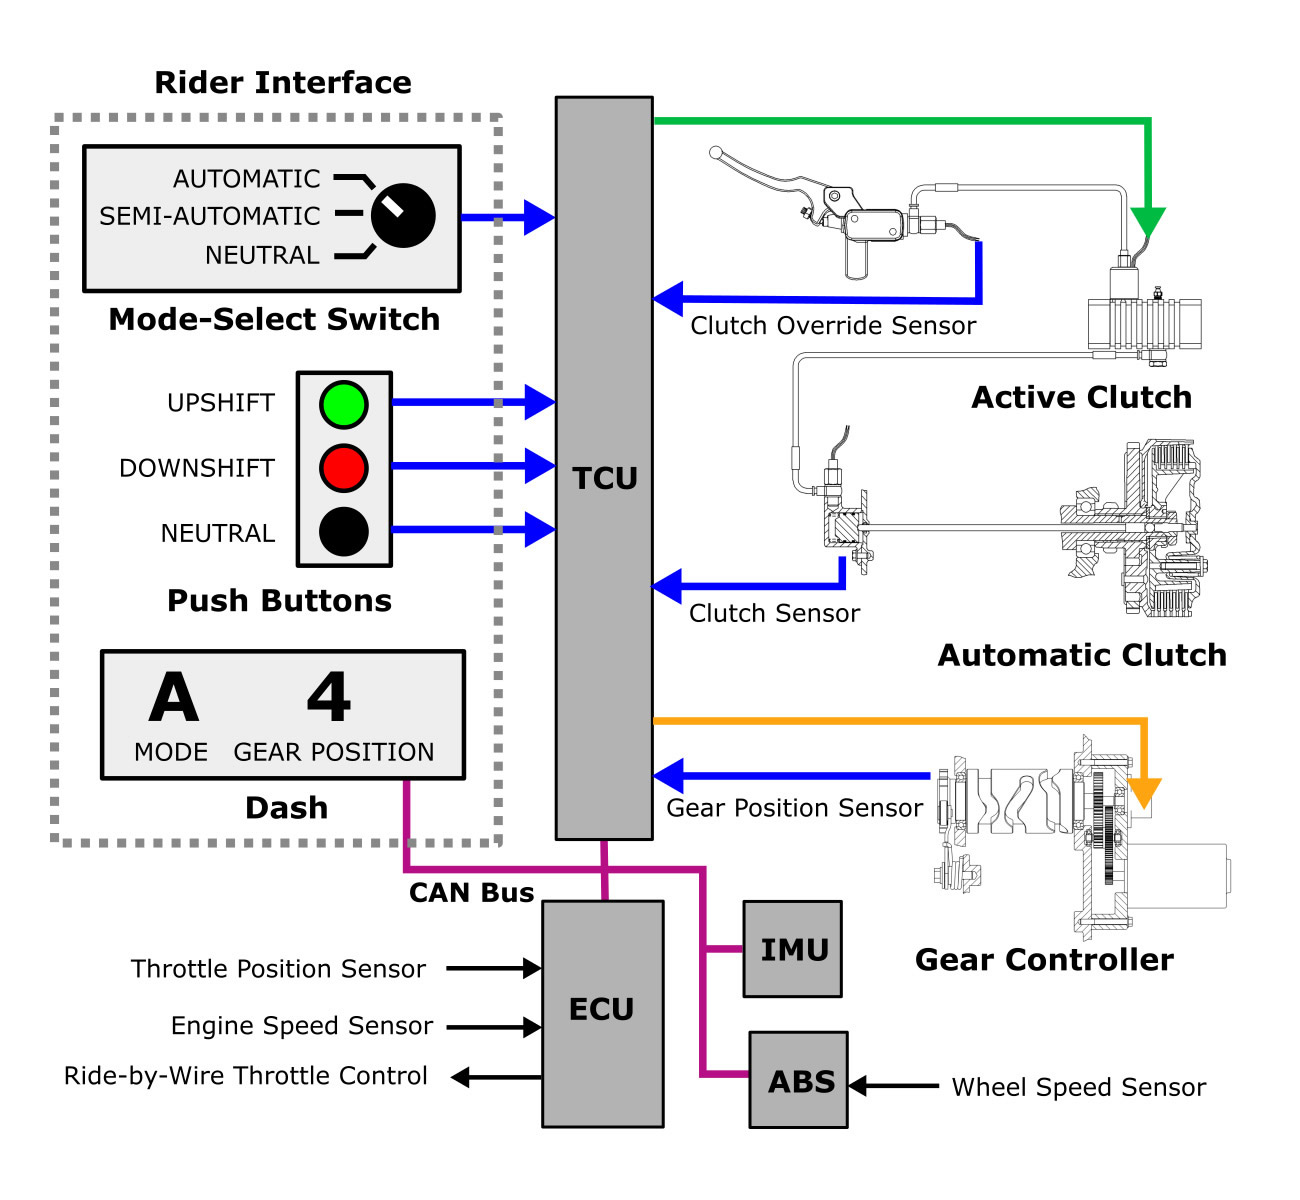 smt the control of a manual with the ease of an automatic